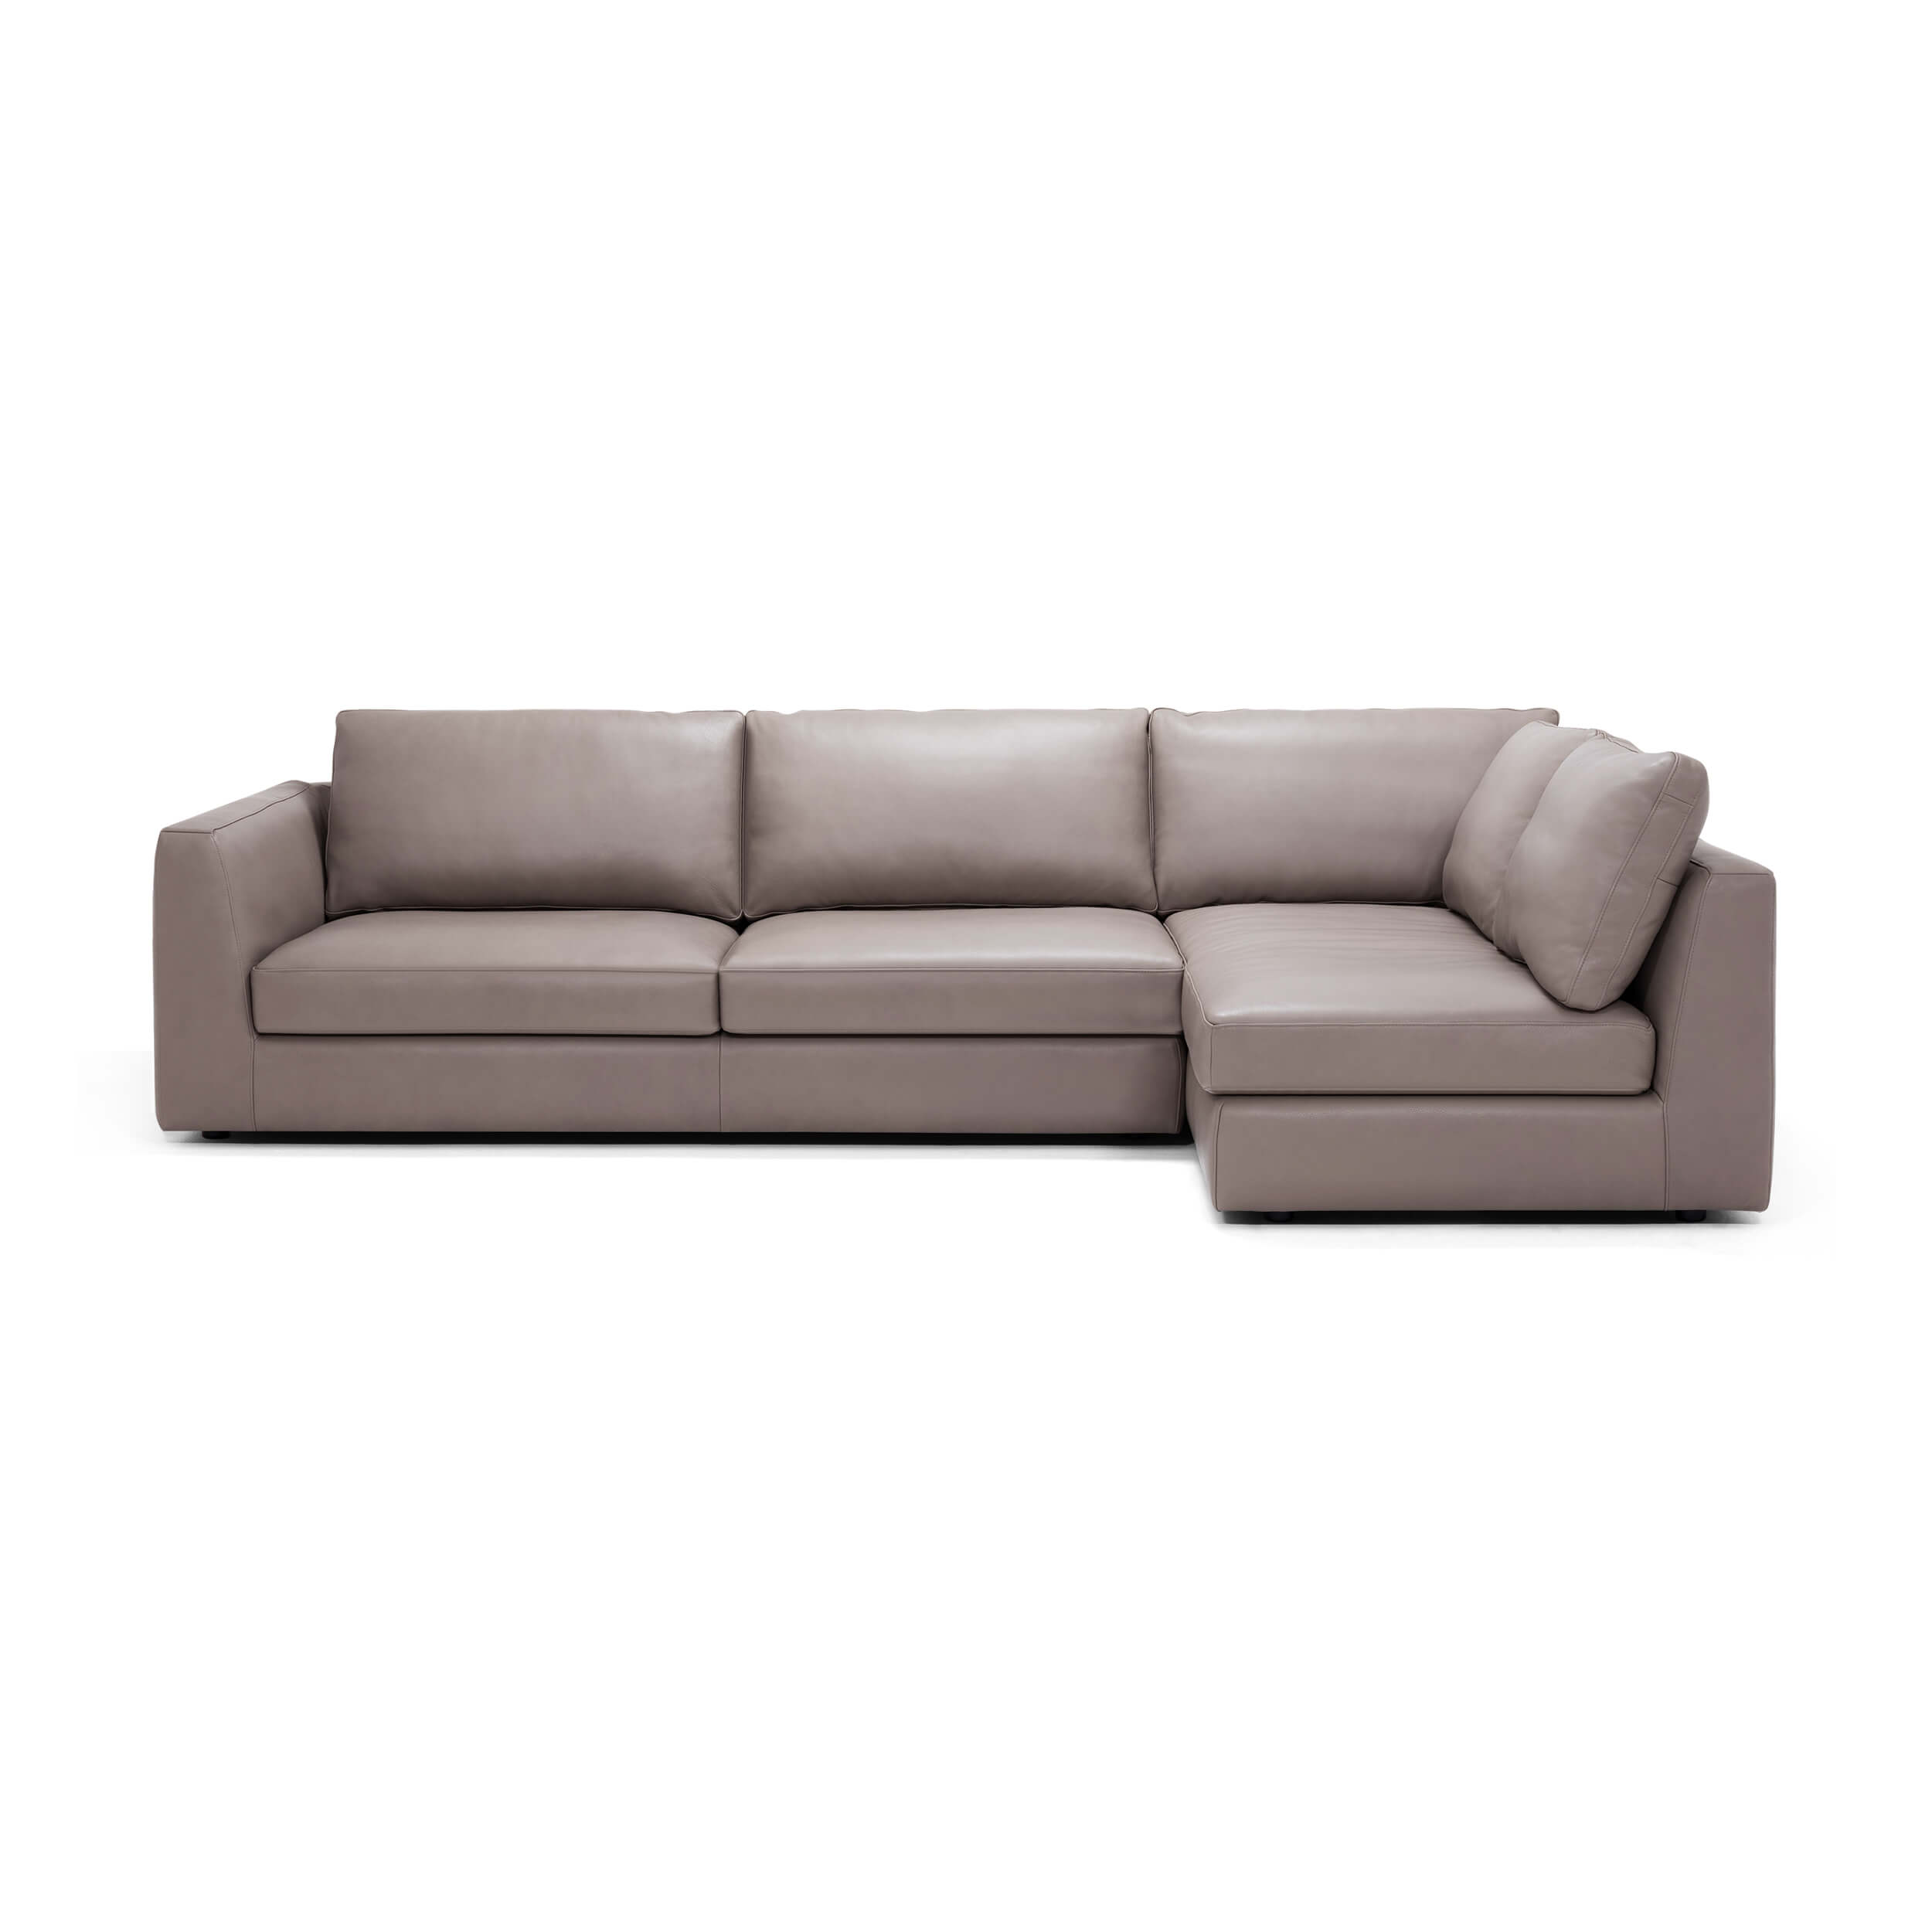 Cello 2-Piece Sectional Sofa With Full Arm Chaise